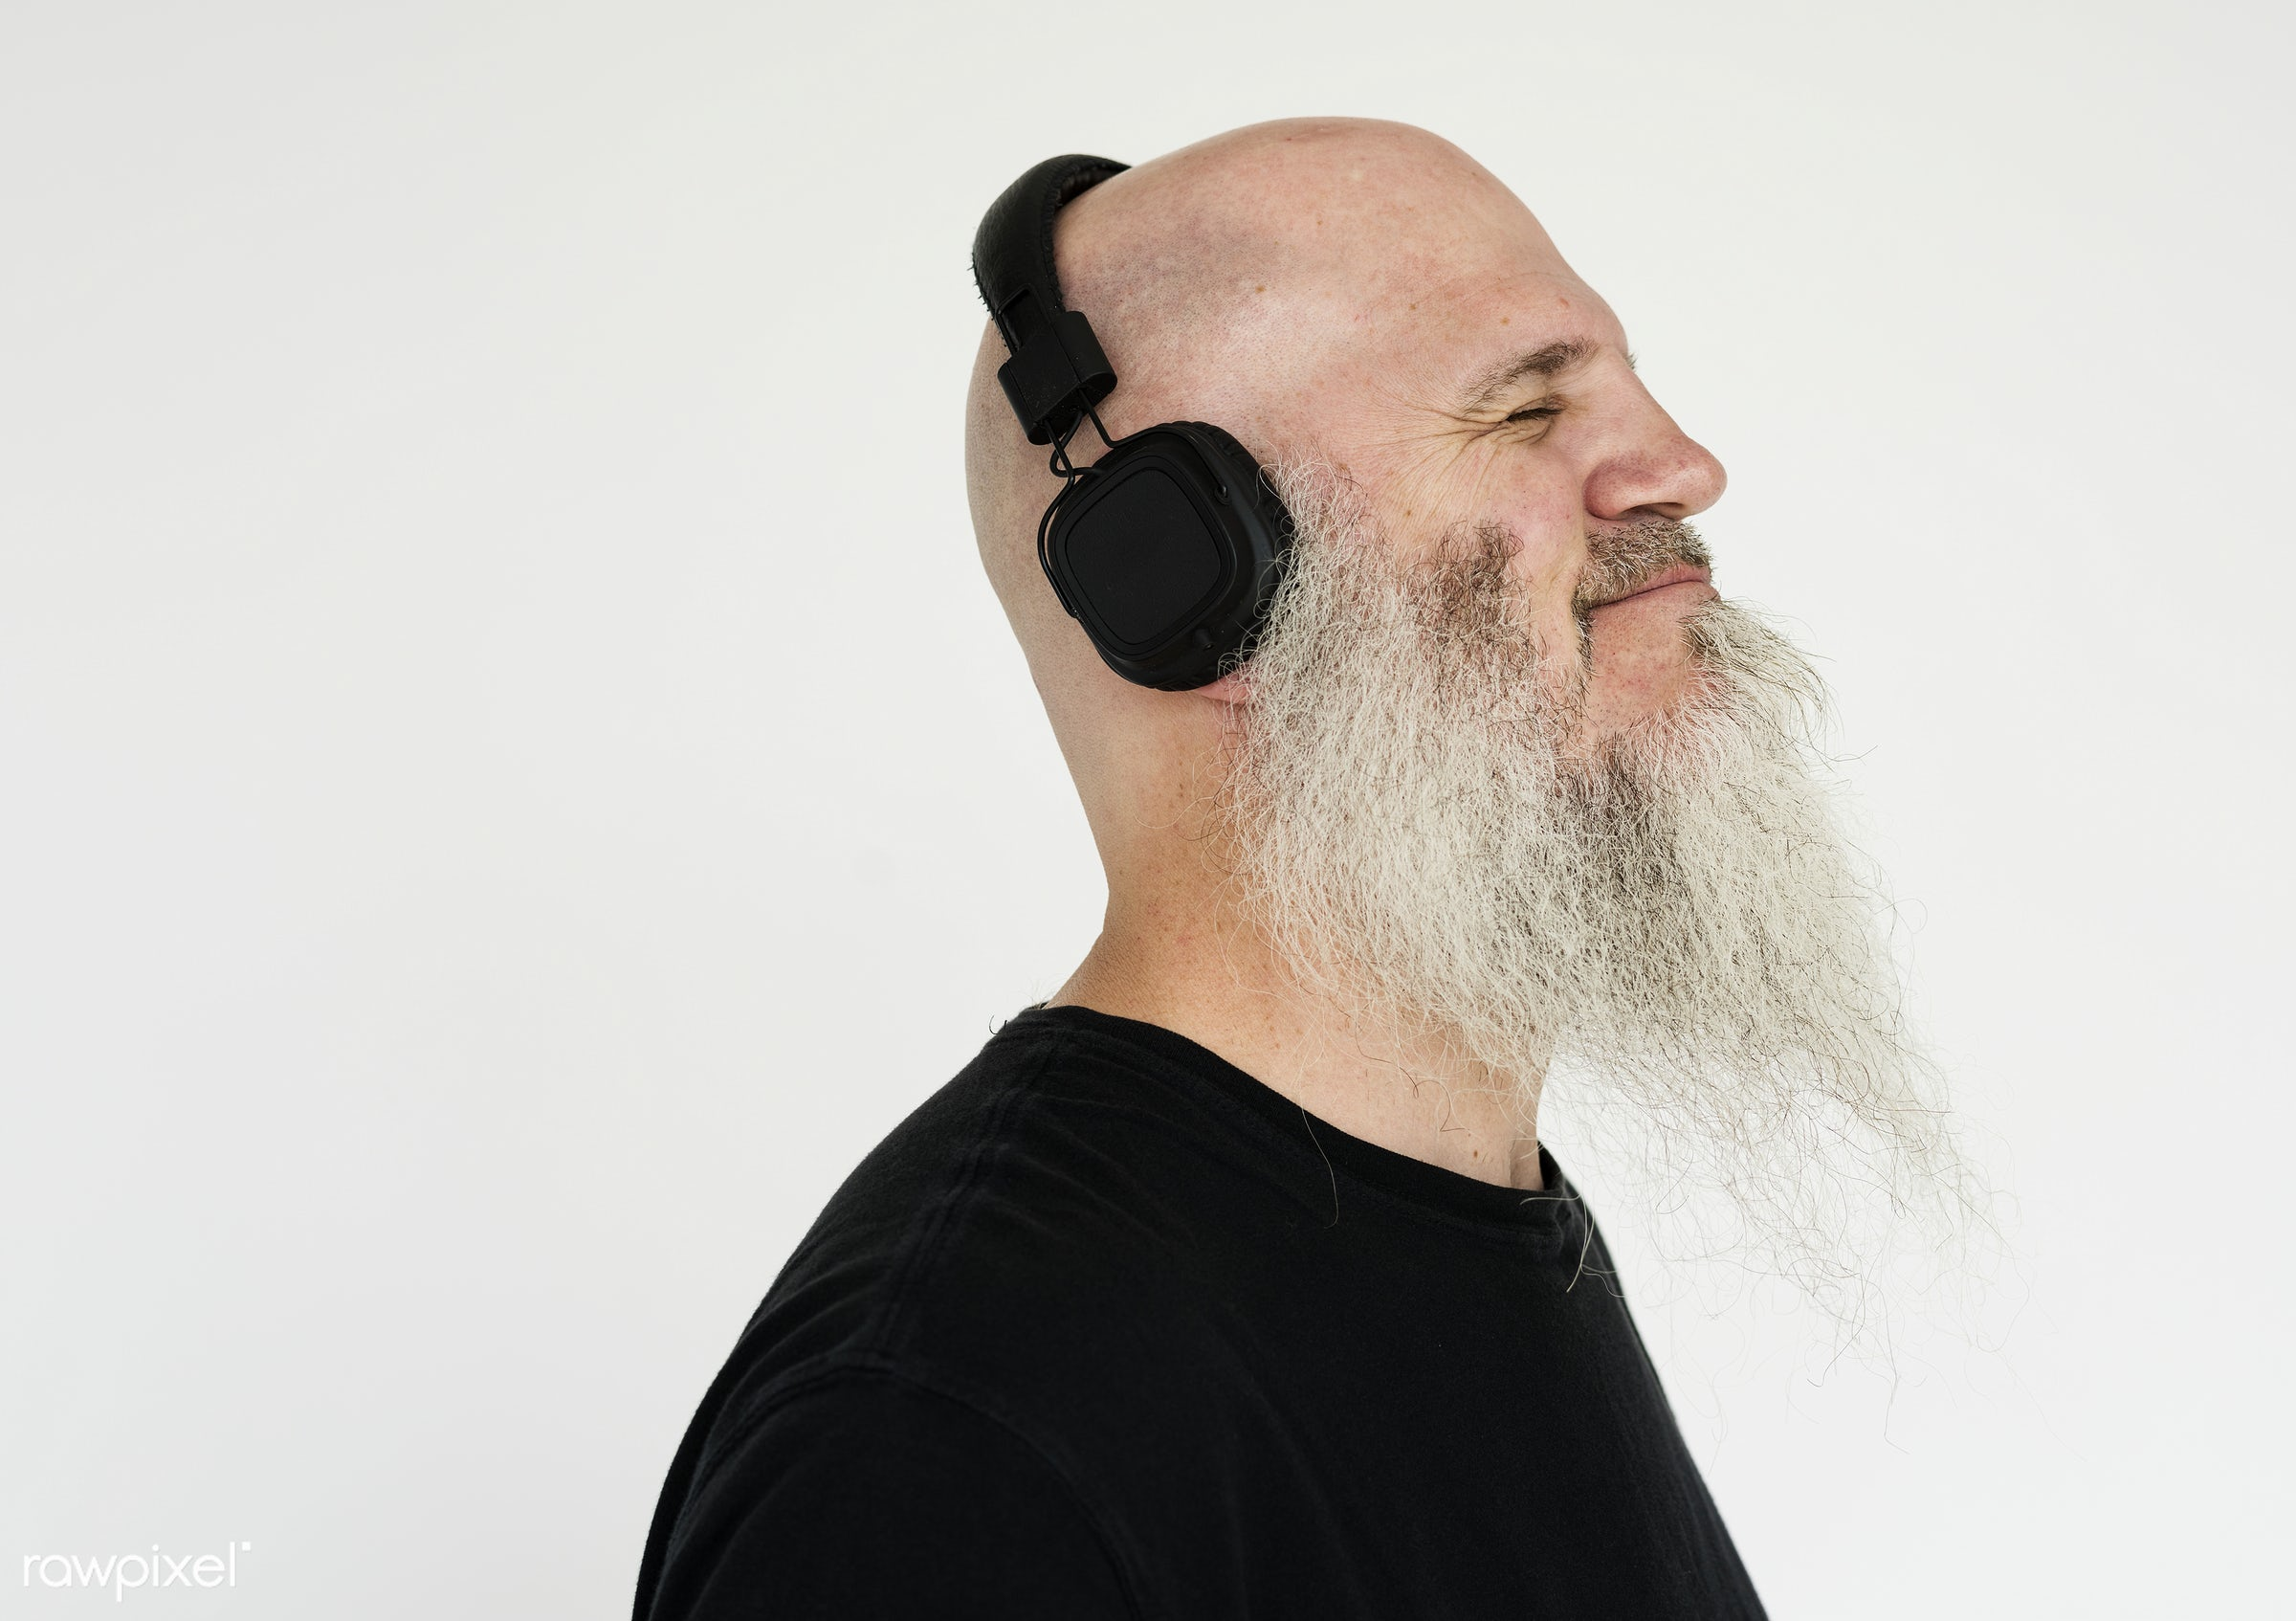 Portrait of a big bearded man listening to music - studio, concept, model, person, people, style, nature, stylish, men,...